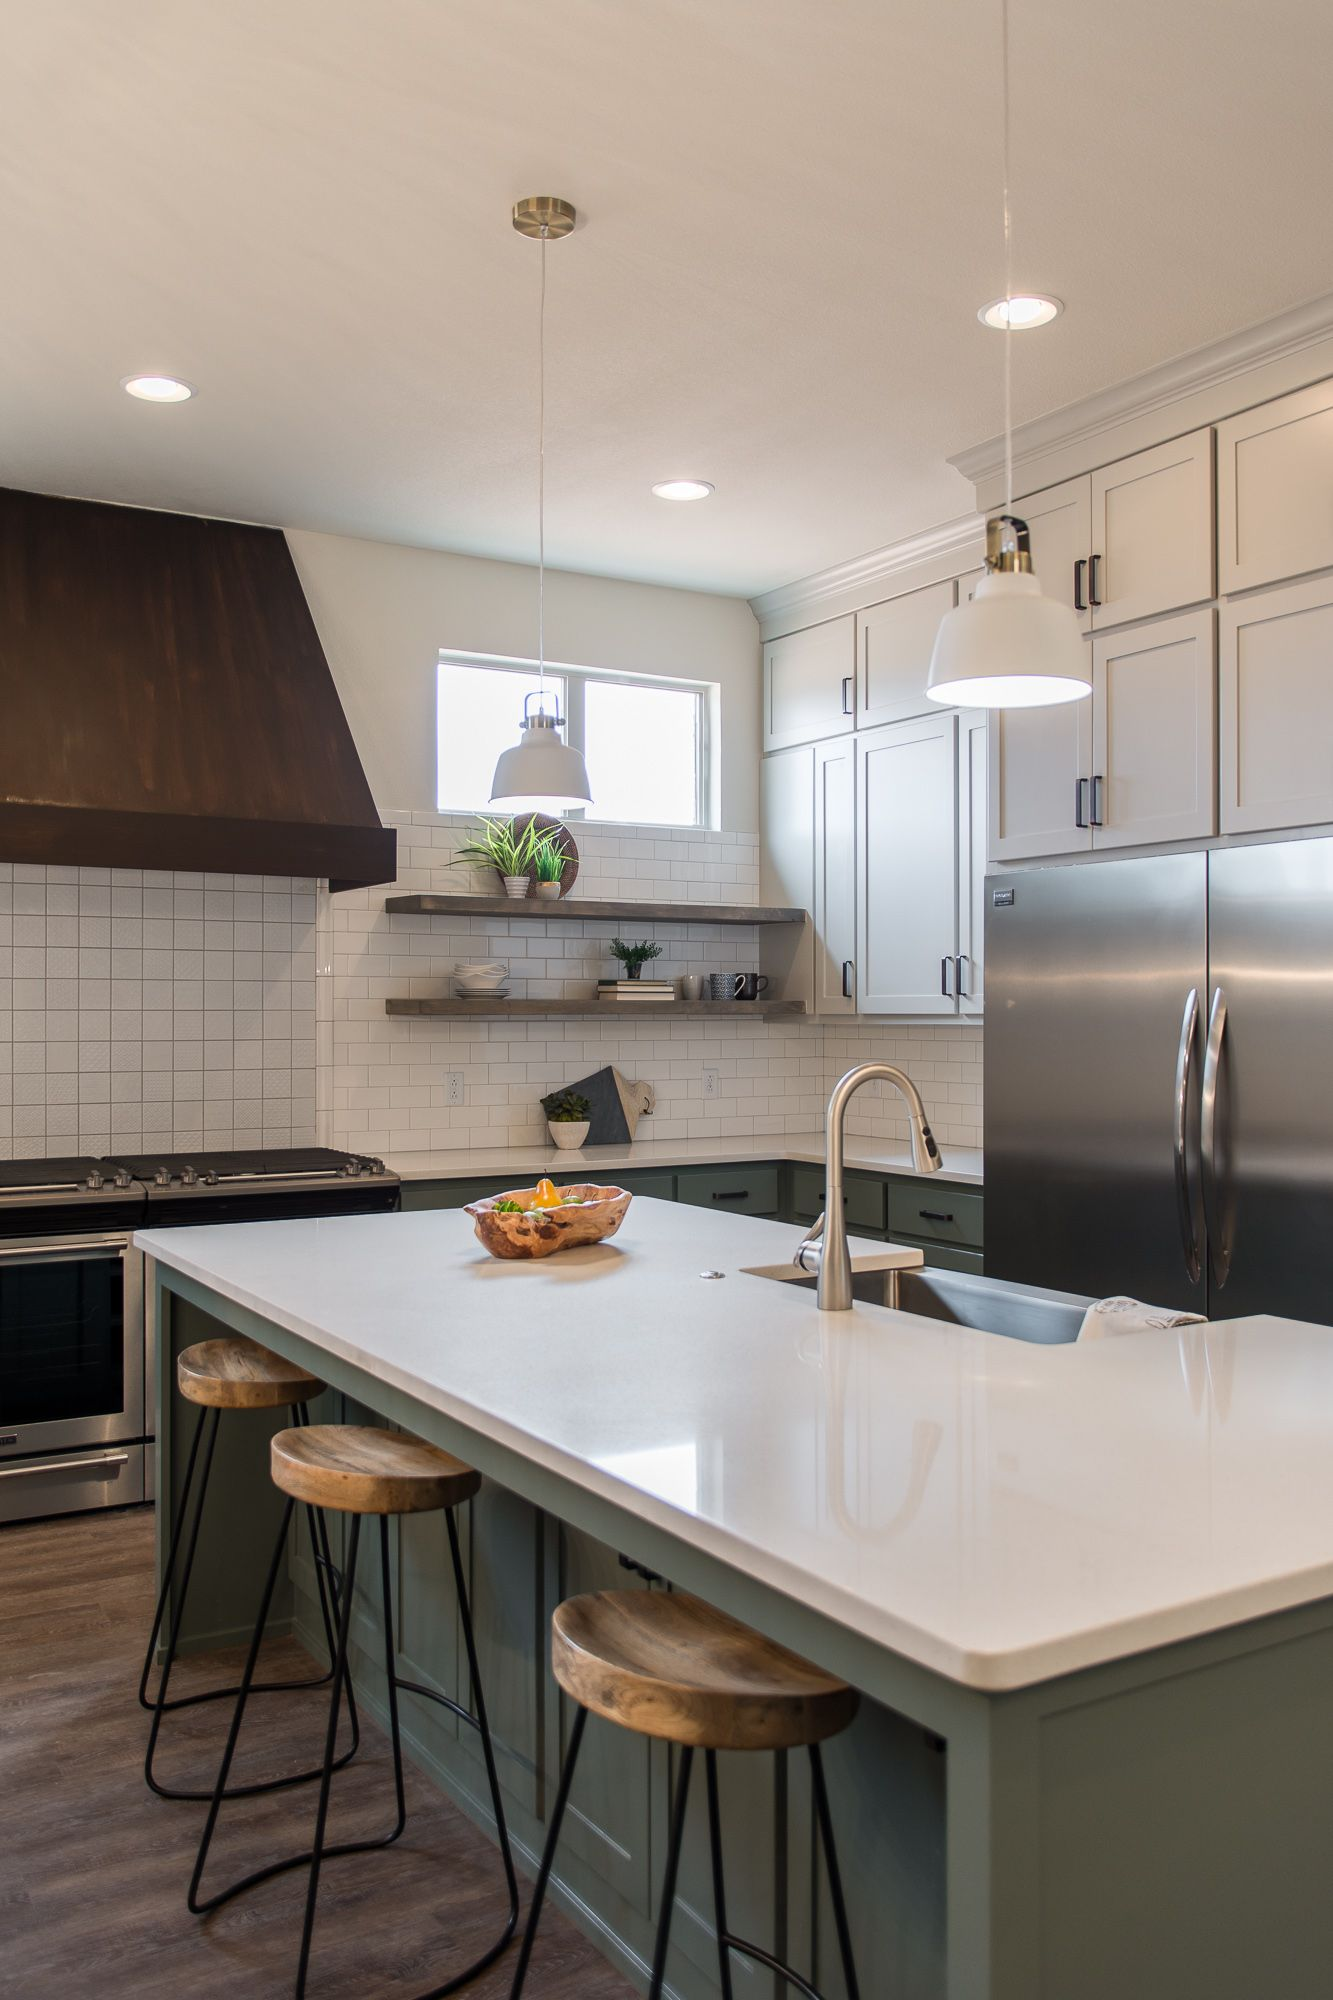 Modern Farmhouse Kitchen By Ventura Homes In Lubbock Texas Ventura Homes Modern Farmhouse Kitchens Home